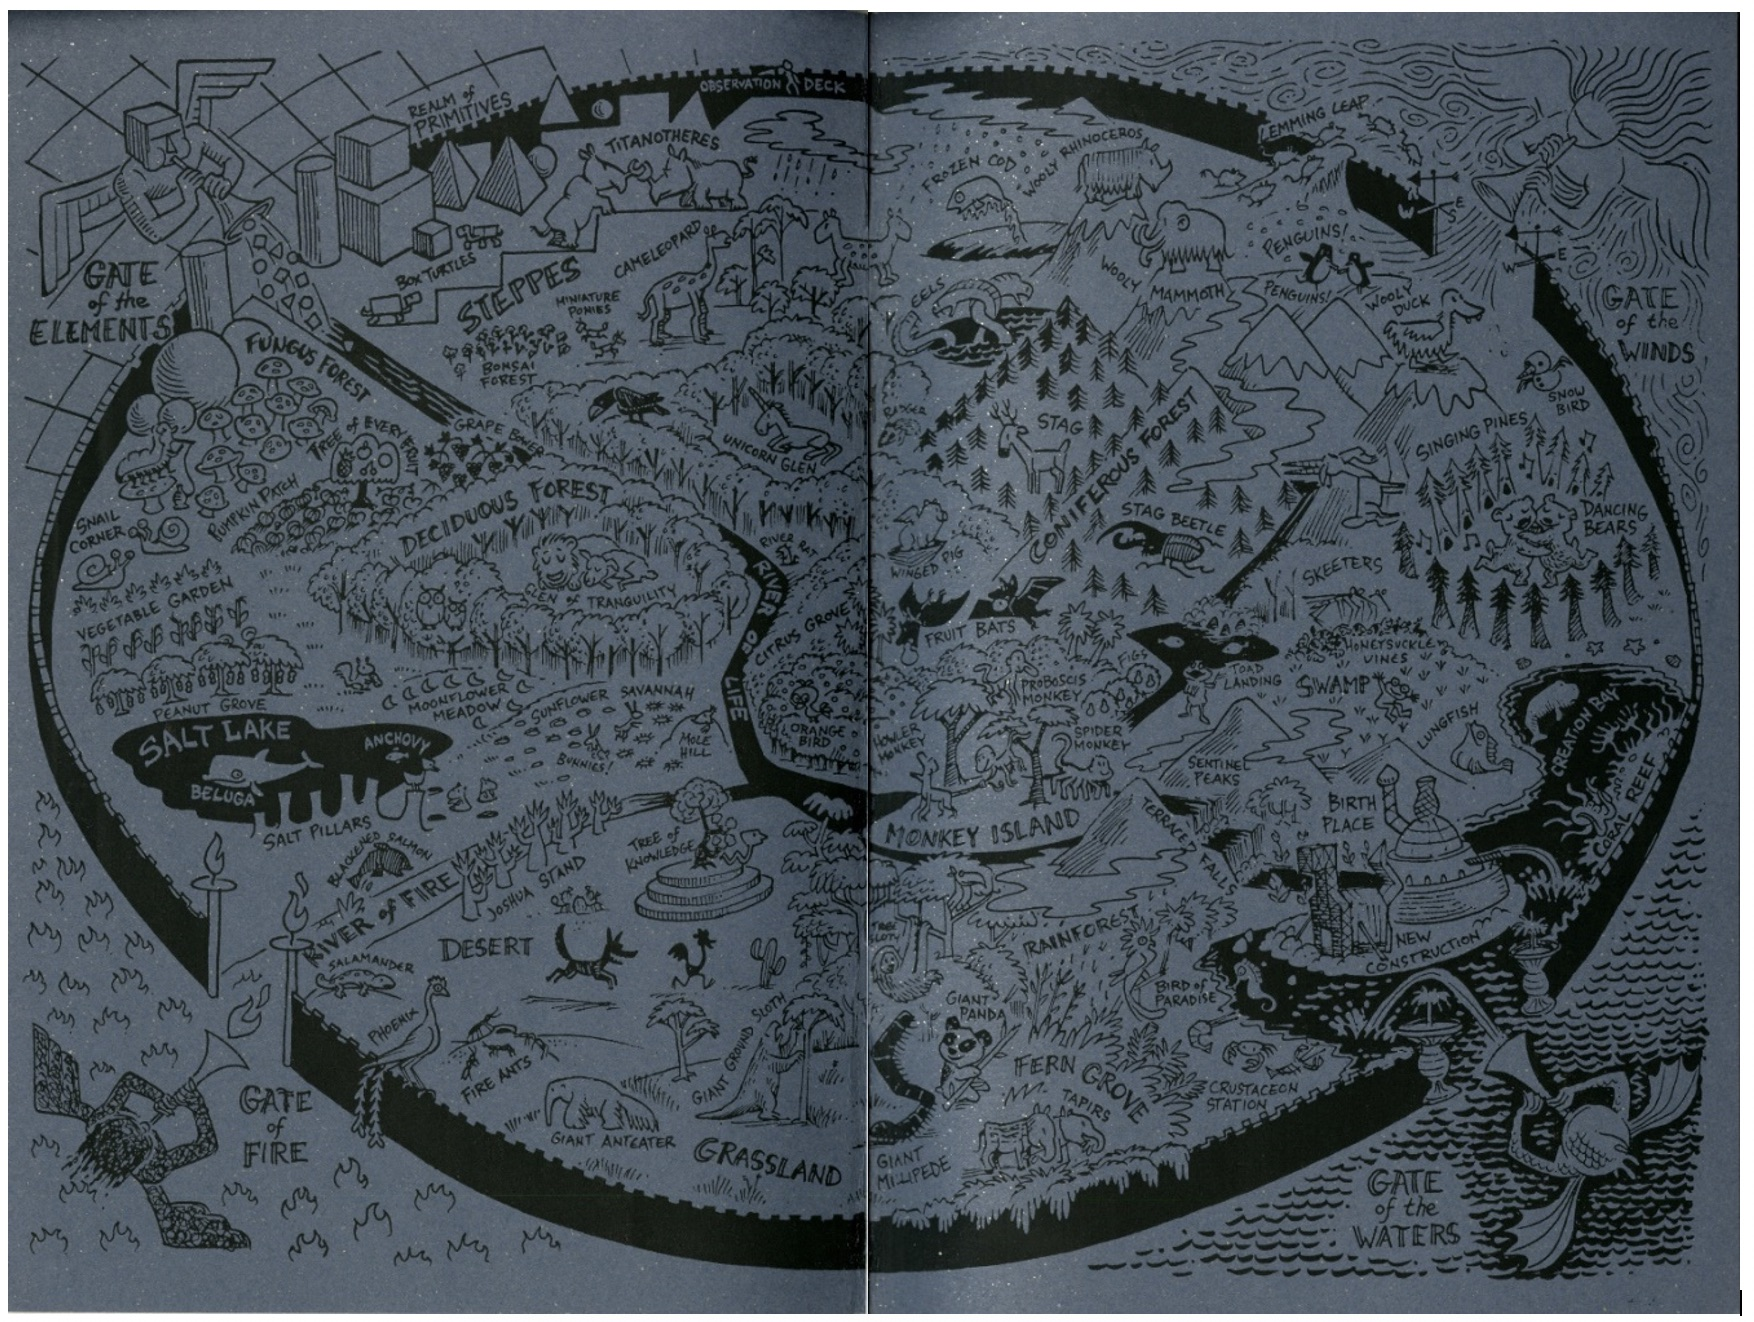 Illustrated cartoon map of the Garden of Eden with four gates, from the inside covers of the zine Monday